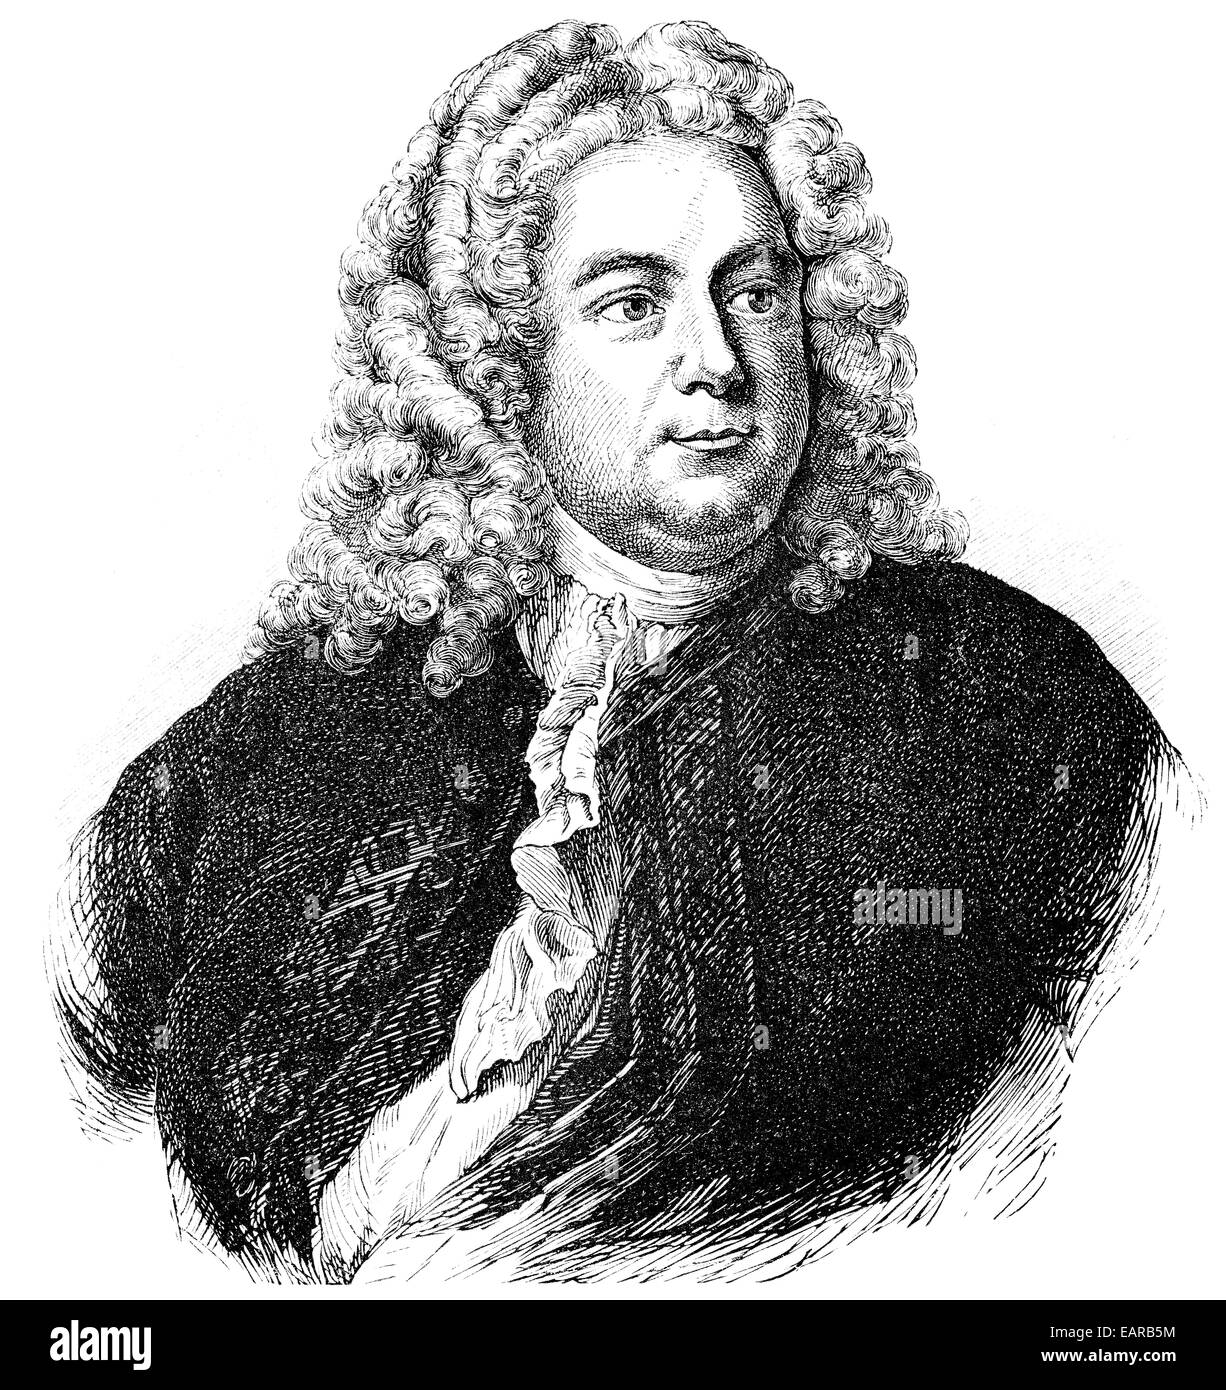 george f handel George frideric handel (1685 - 1759) born in the german town of halle in 1685, handel studied briefly at the university of halle before moving to hamburg in 1703, where he served as a violinist in the opera orchestra and subsequently as harpsichordist and composer.